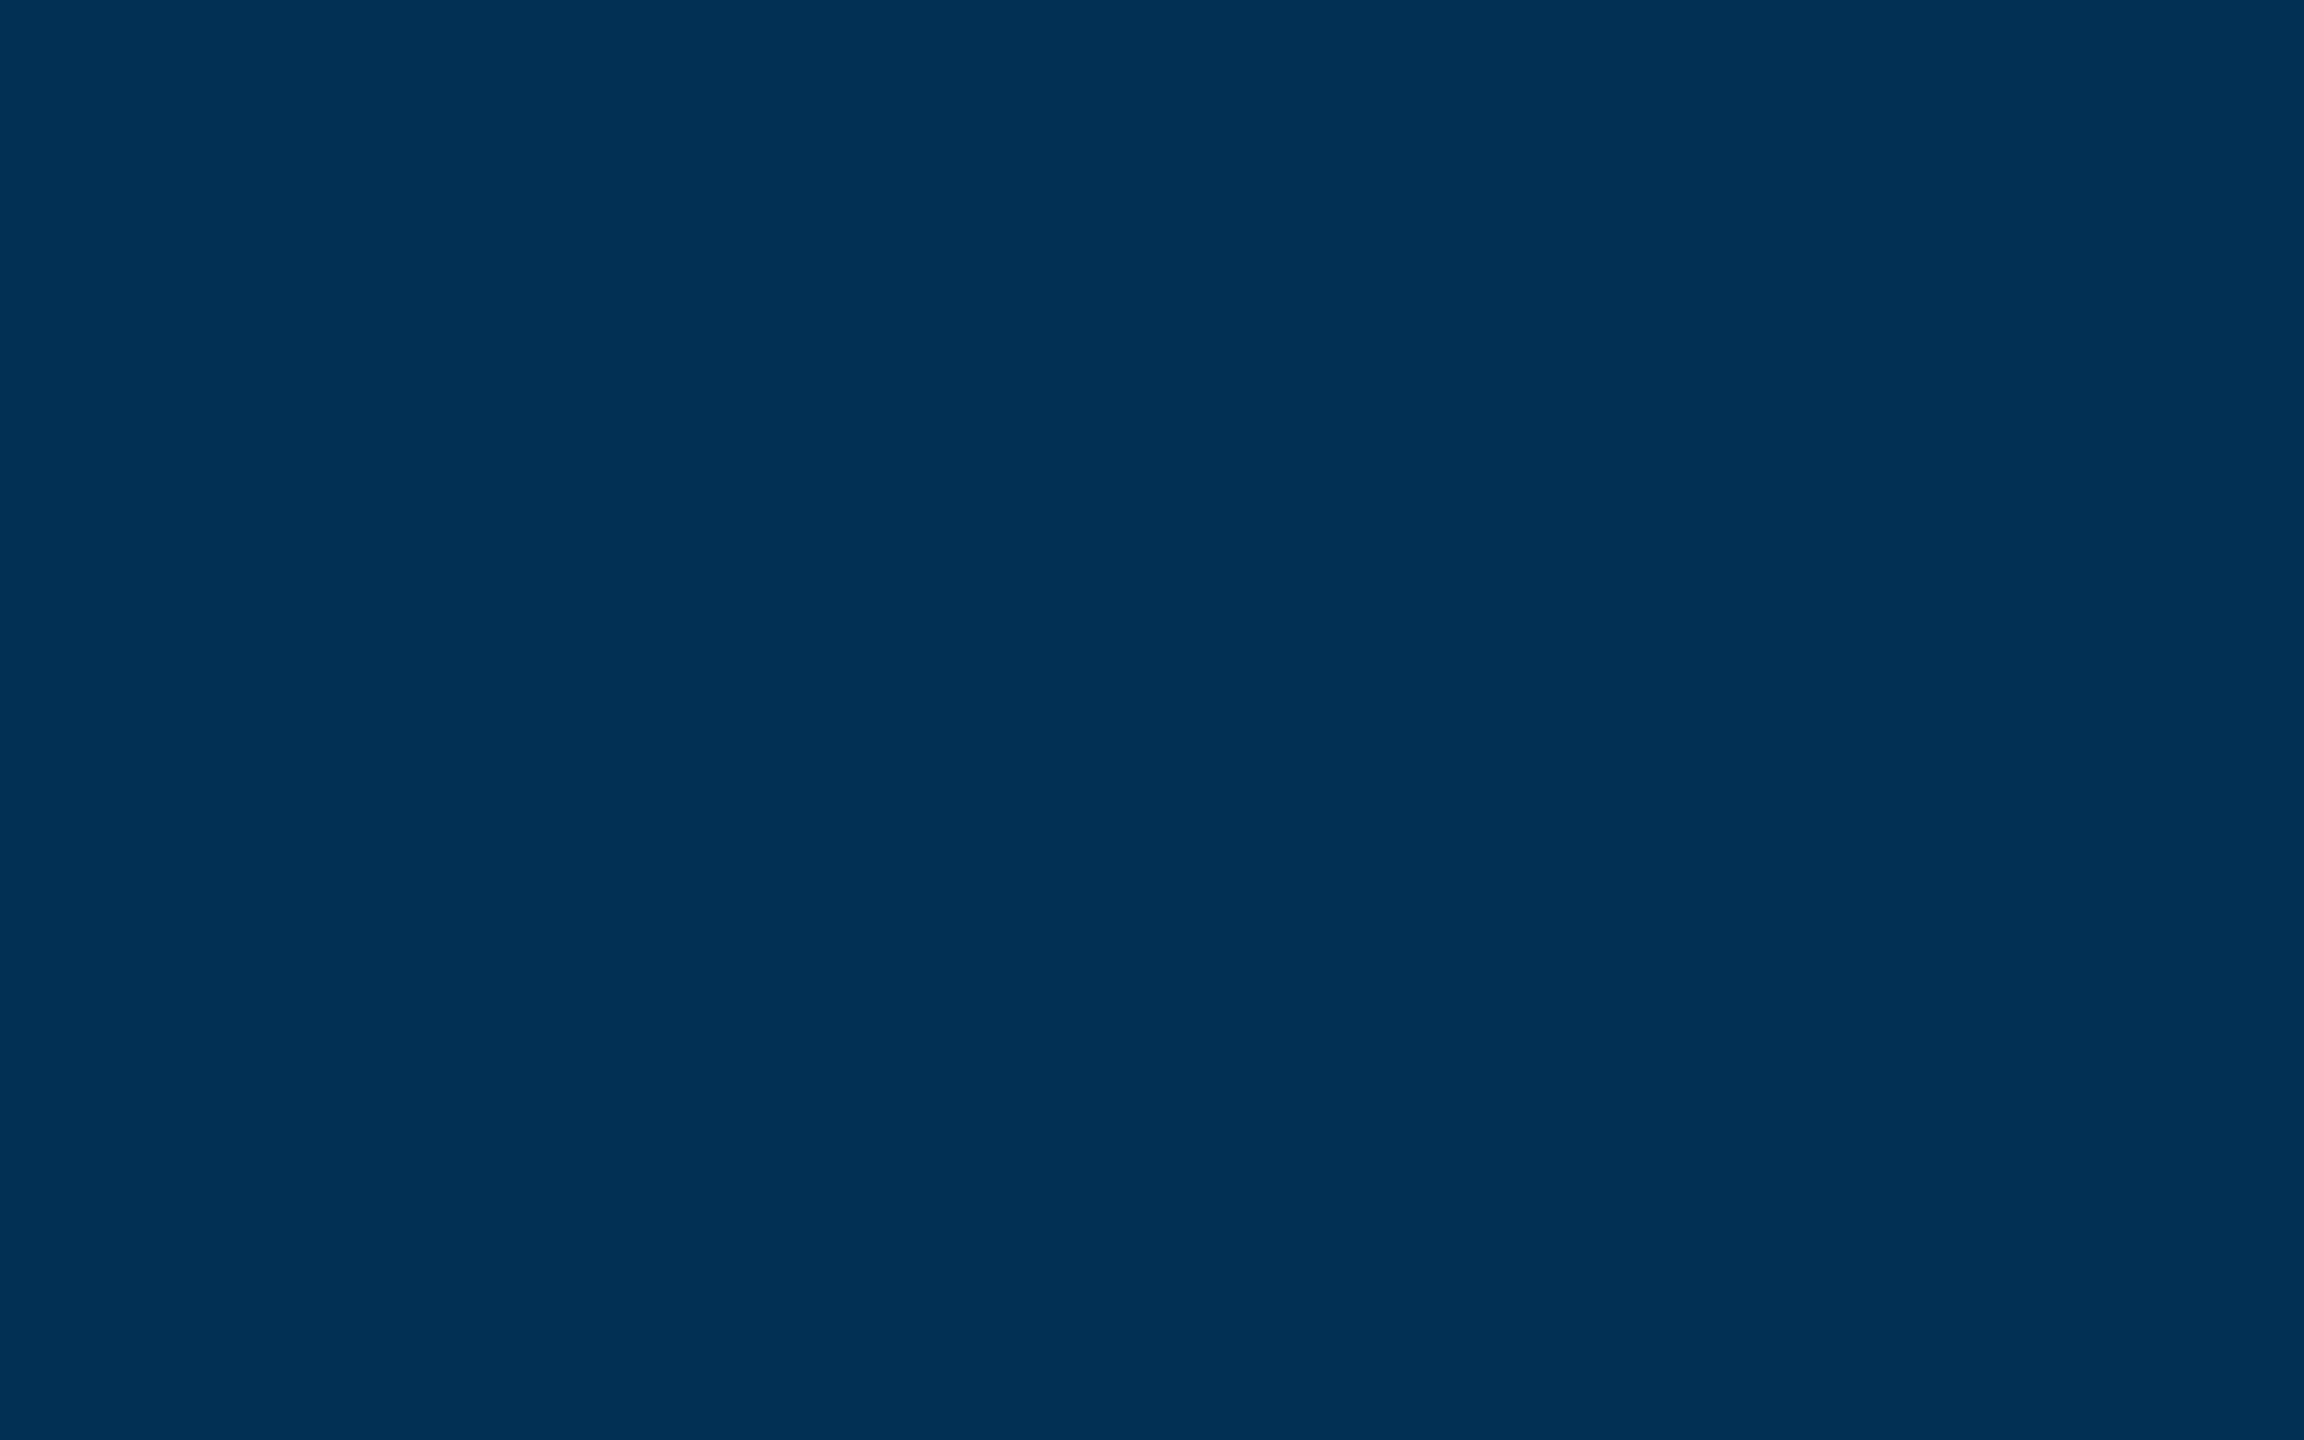 2304x1440 Prussian Blue Solid Color Background